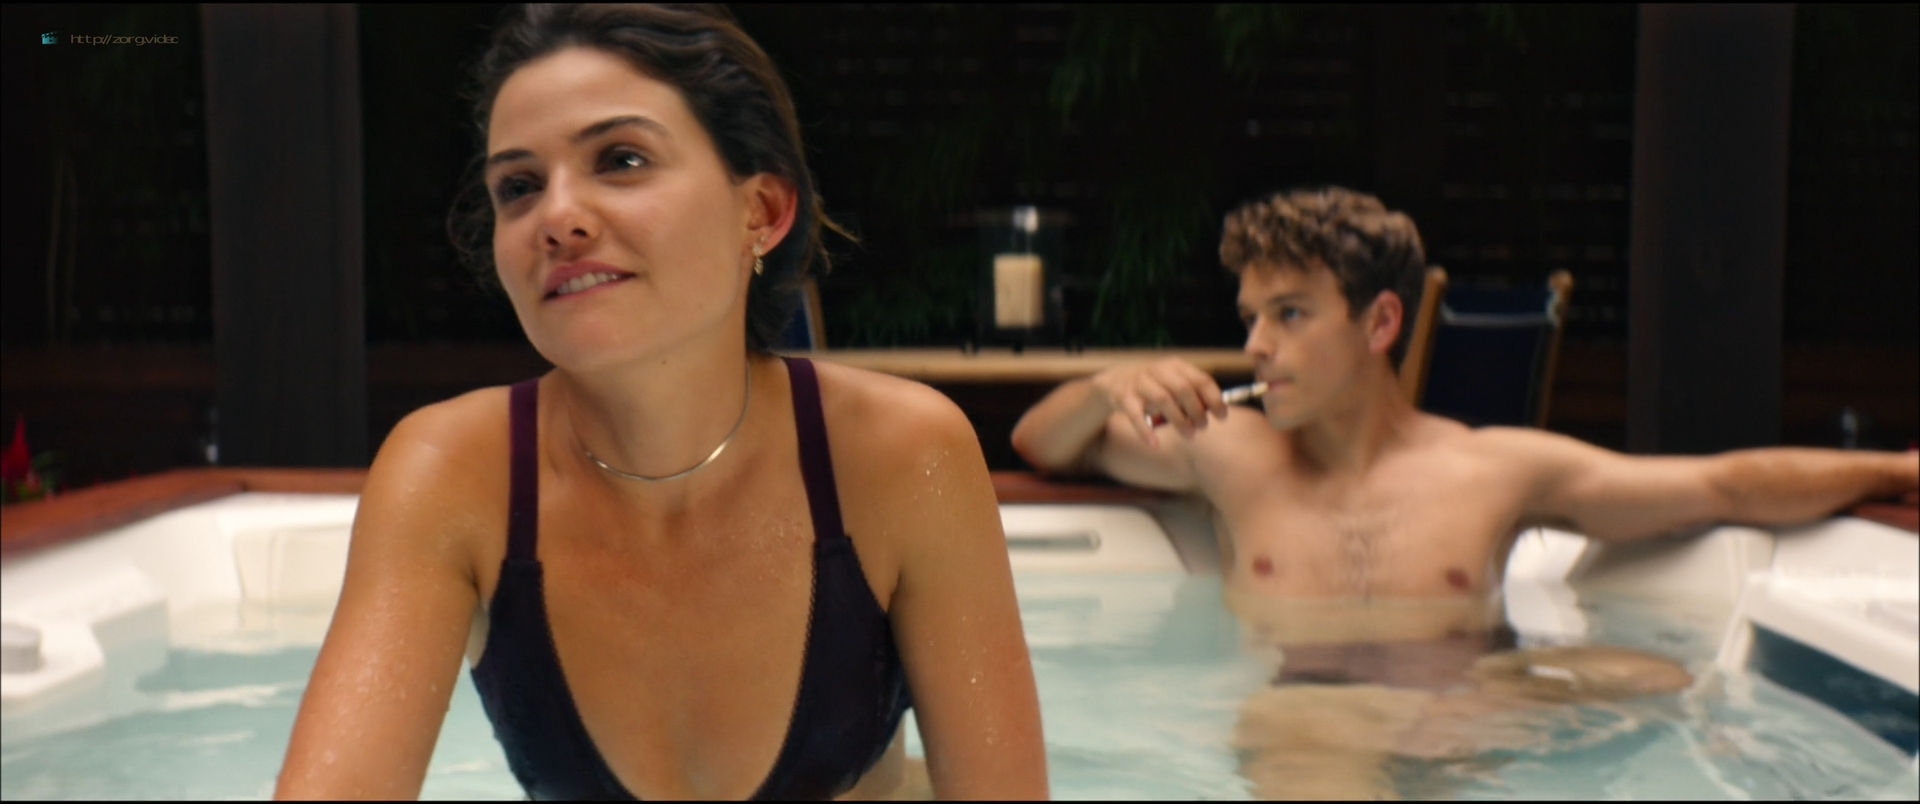 Danielle Campbell hot sexy Paulina Singer hot - Tell Me a Story (2018) s1e-1-5 HD 1080p (11)